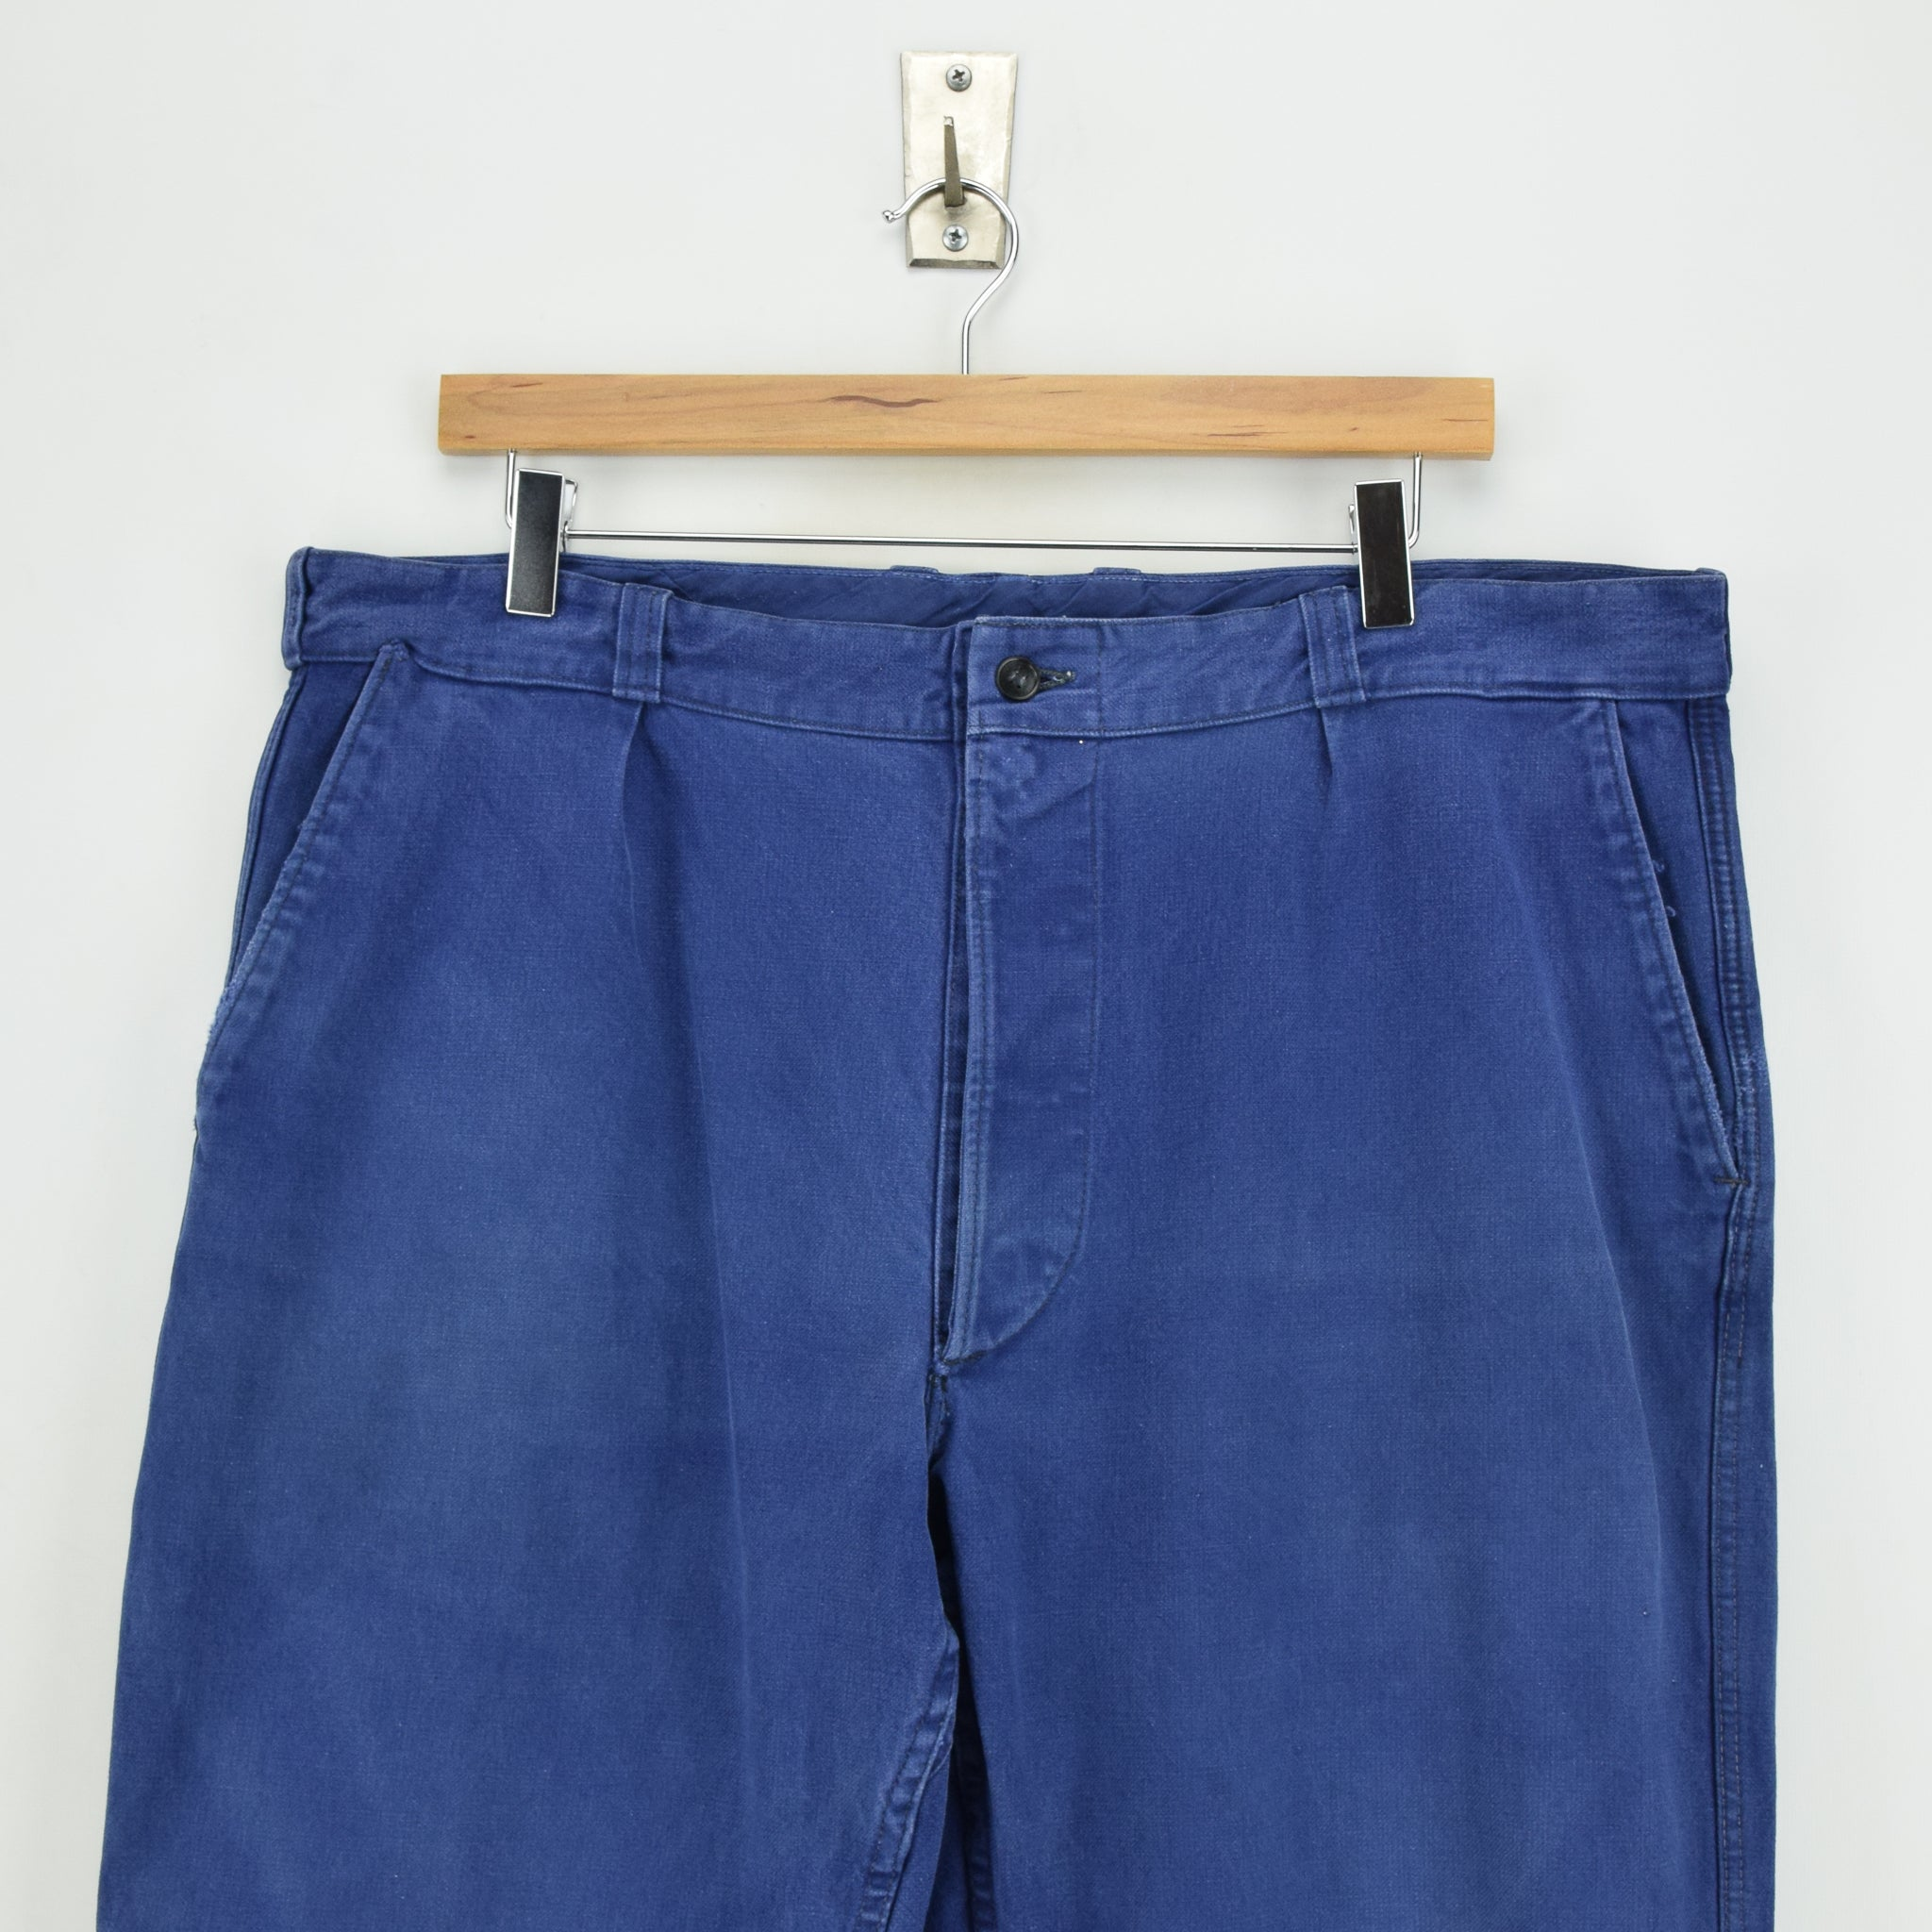 Vintage Workwear Blue Vetra French Work Utility Trousers France Made 36 W 28 L front waist